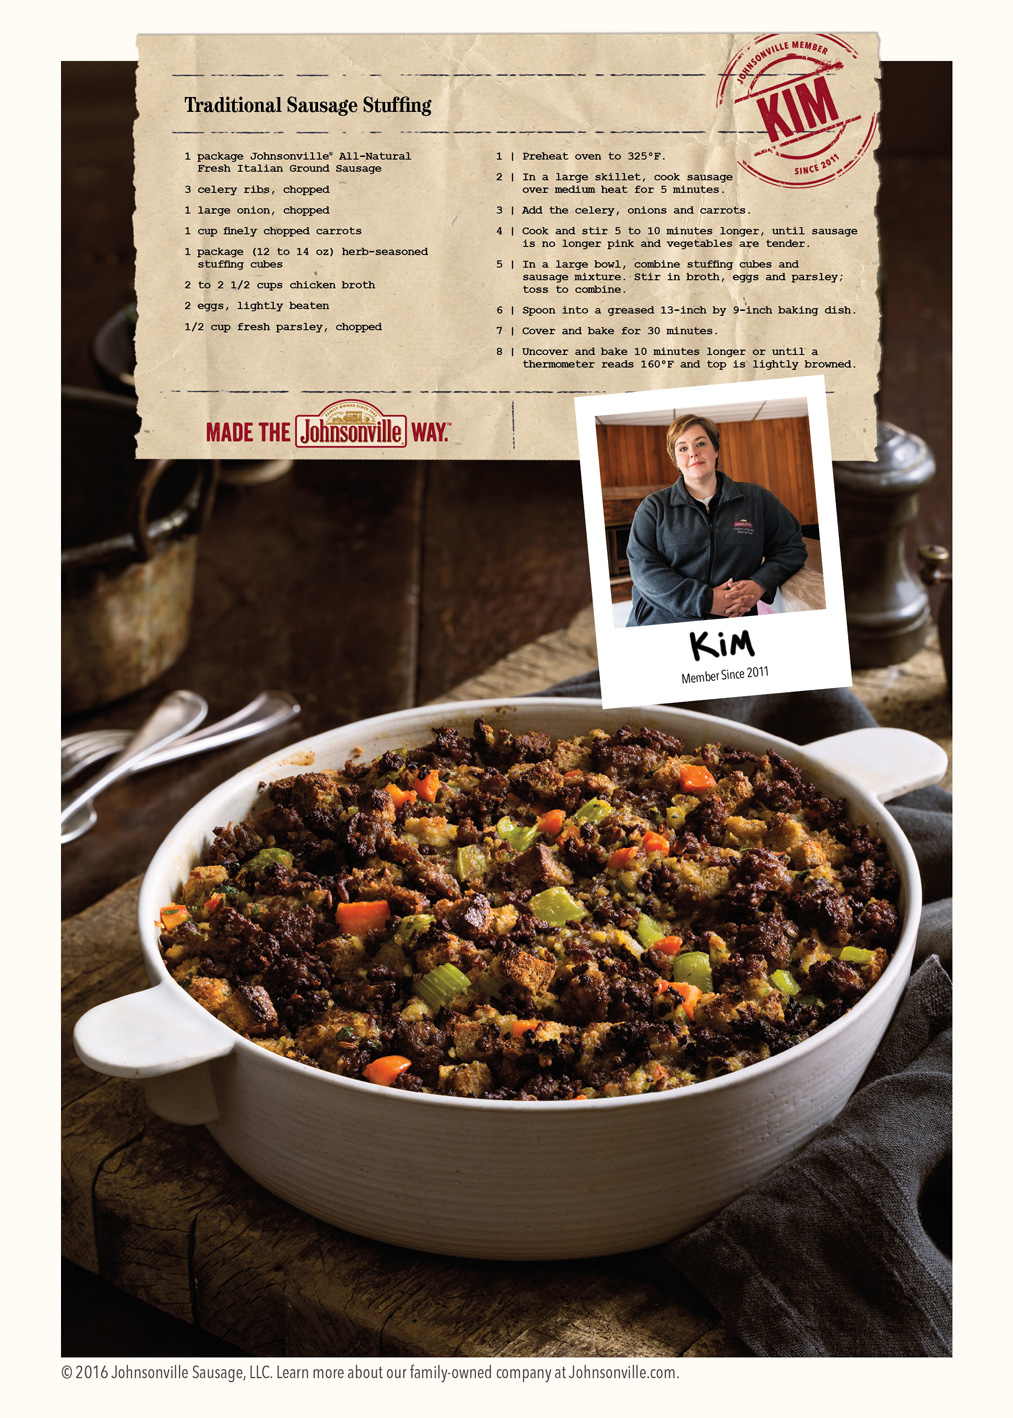 JVL_0050_Kim_Recipe_Stuffing_7_5x10_5_V3R-copy